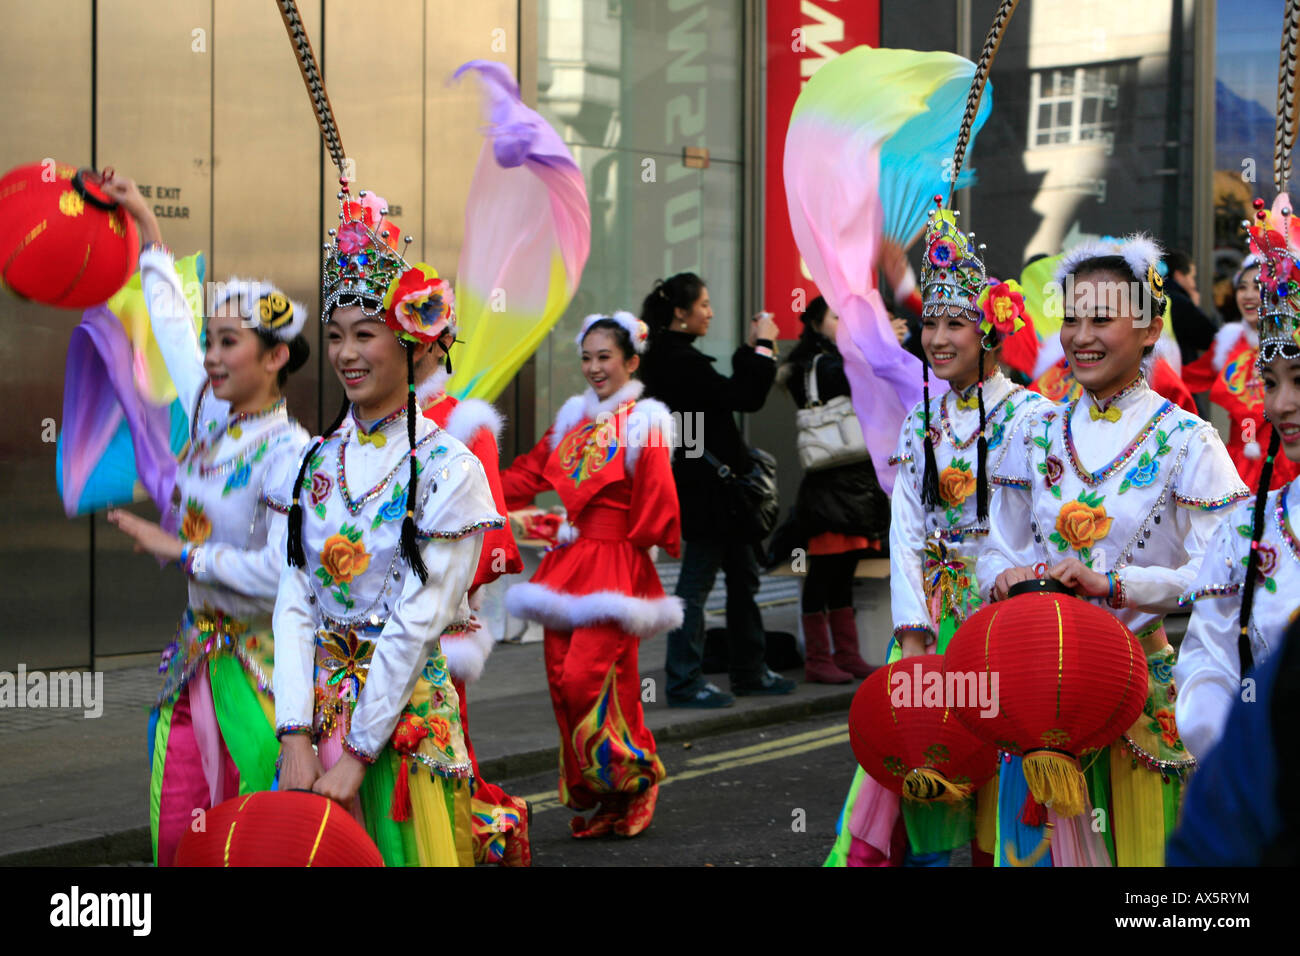 Colourful costumes, Chinese New Year procession in downtown London on February 10, 2008, London, England, UK, Europe - Stock Image